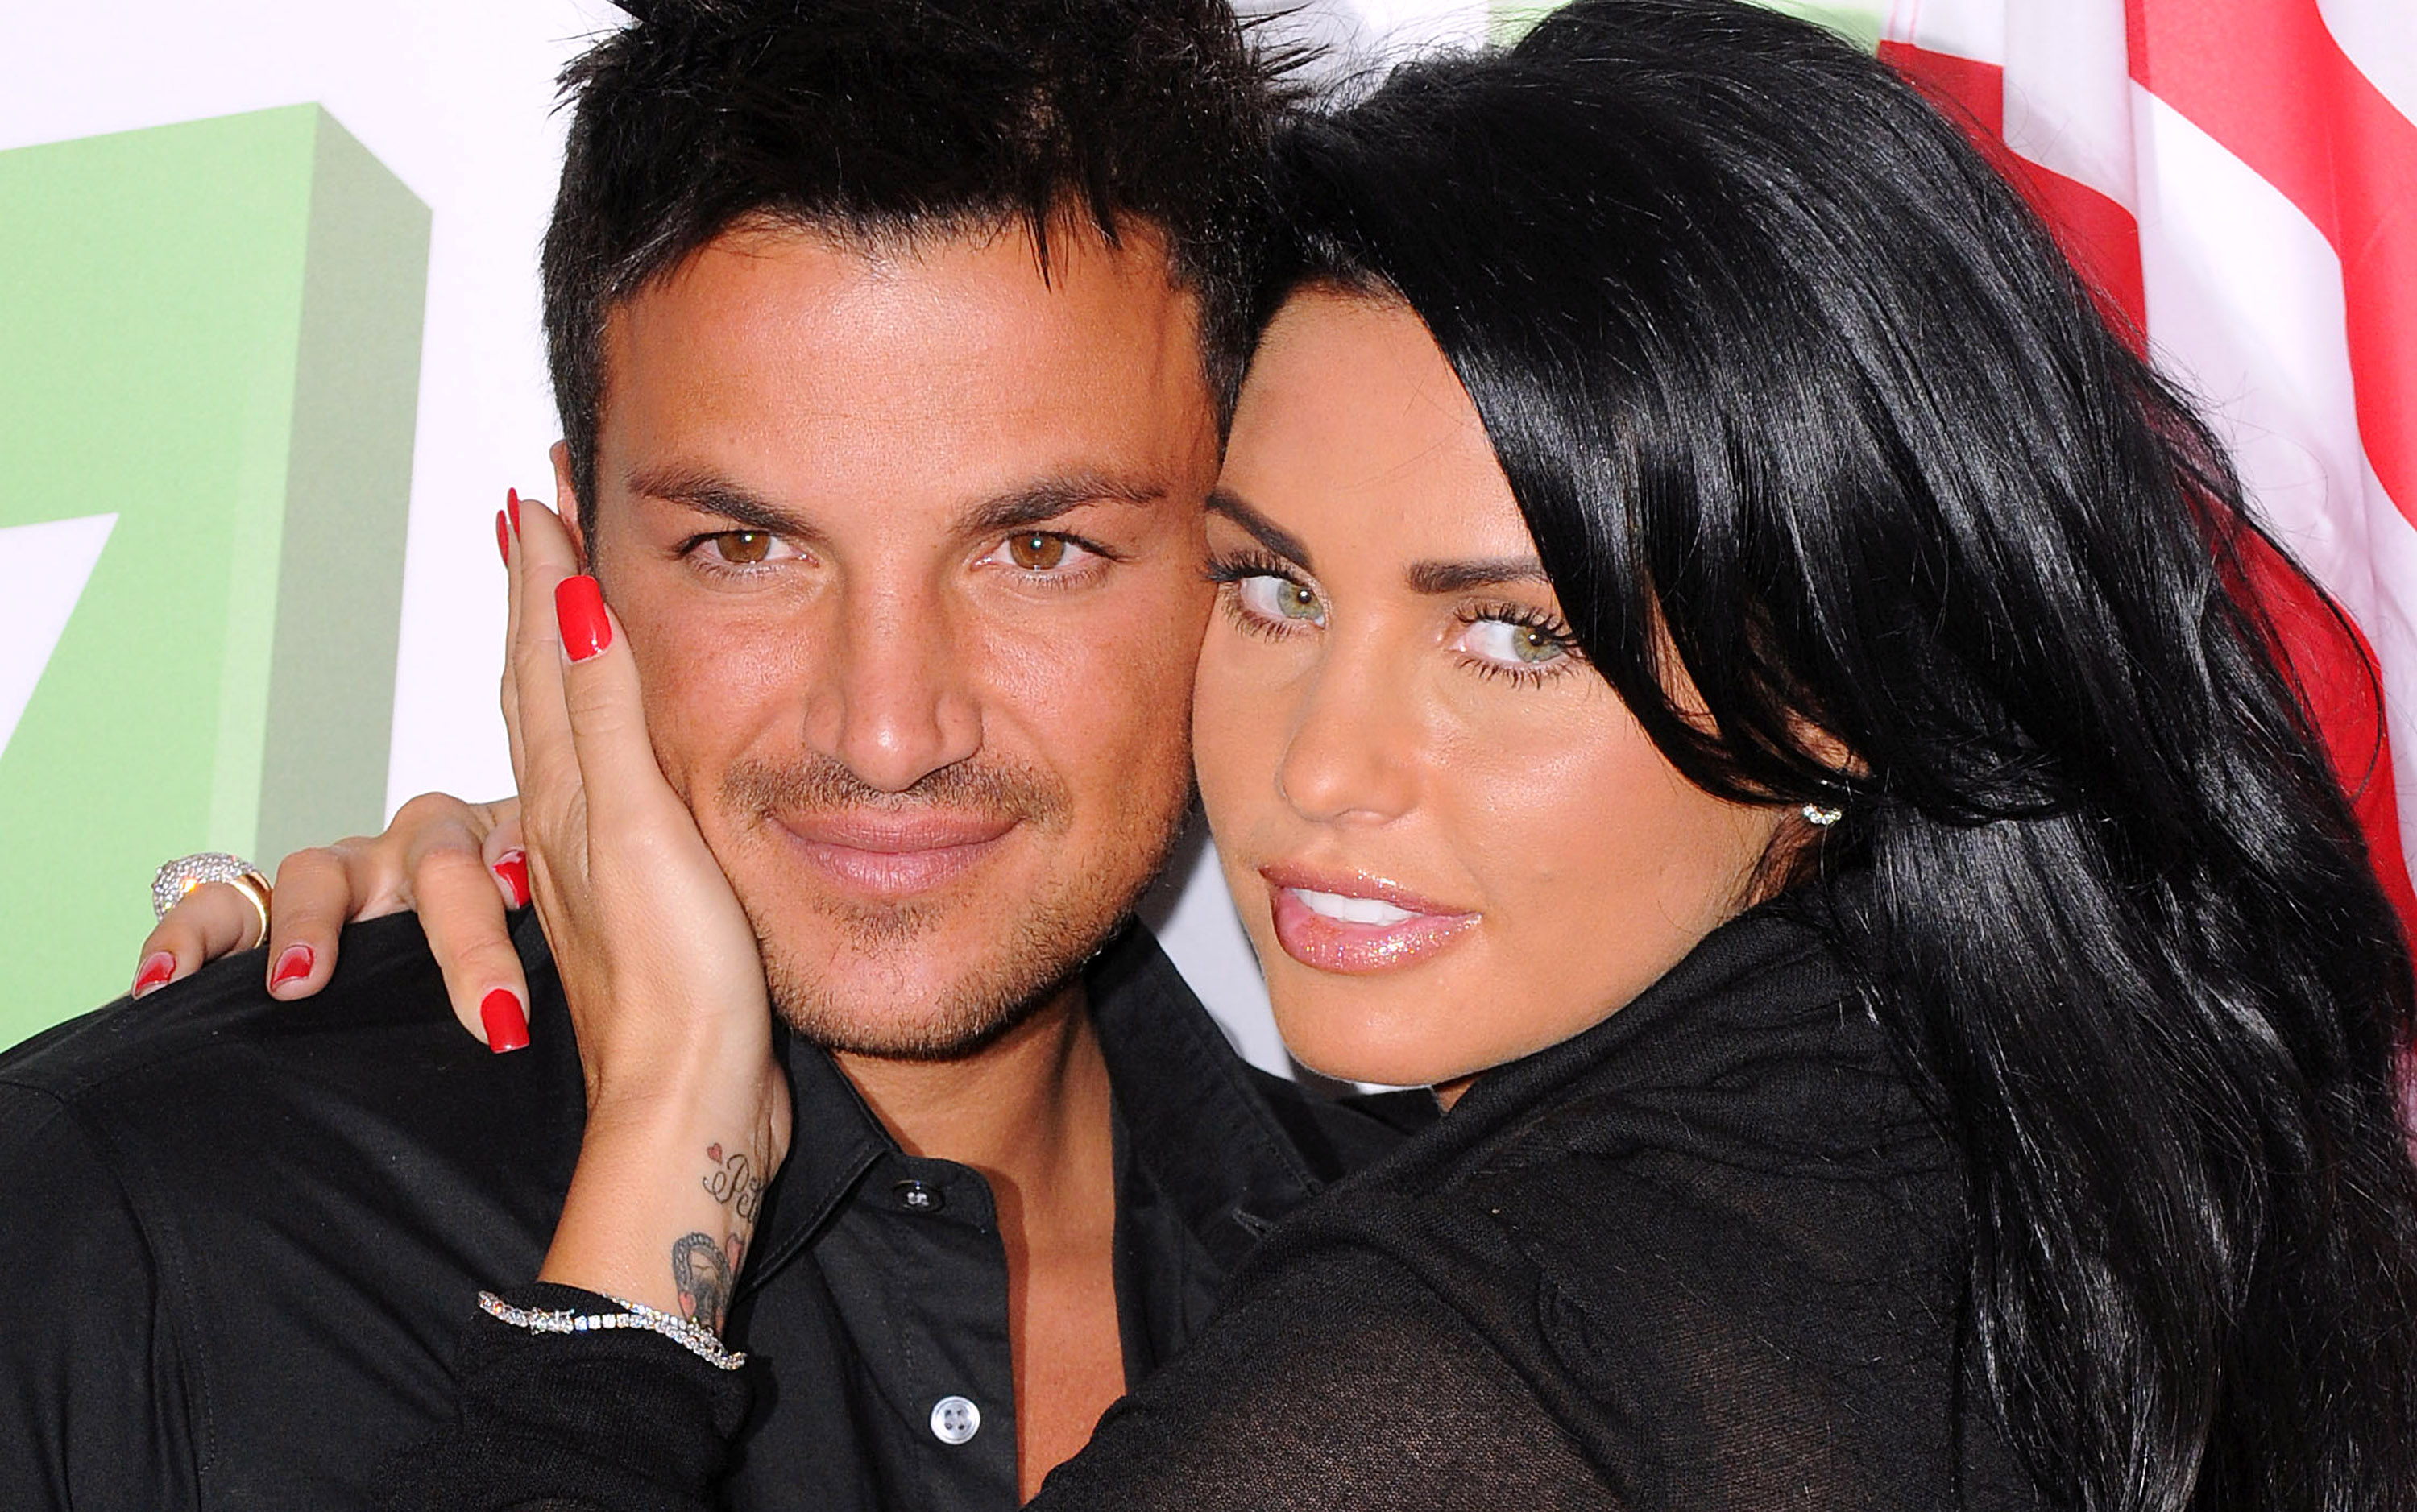 'Thanks for being a great dad': Katie Price reaches out to ex Peter Andre on his birthday